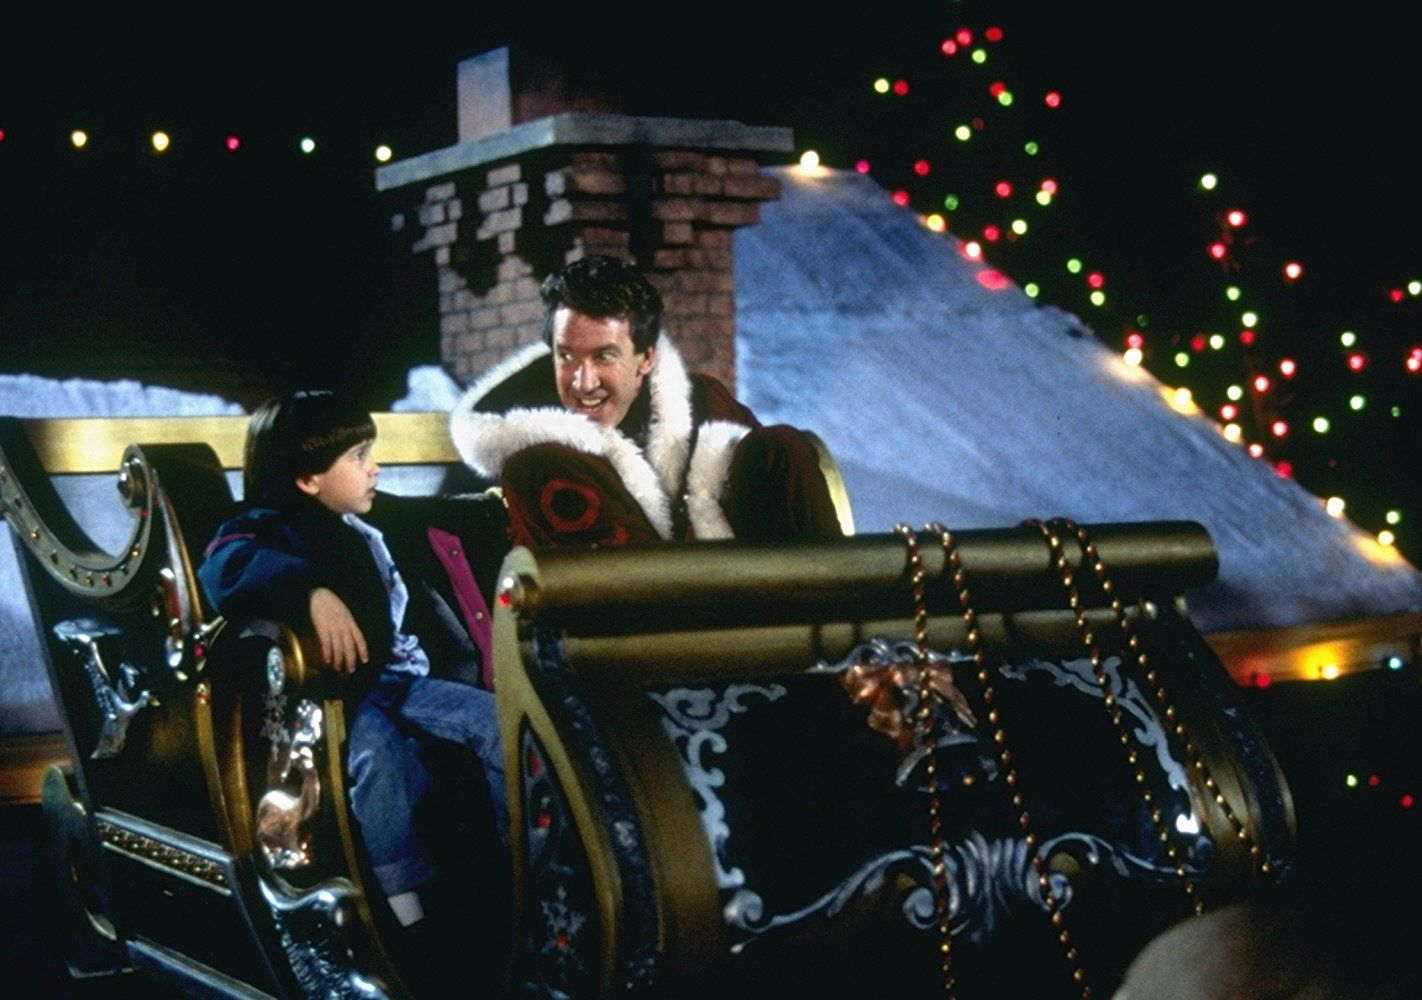 Tim Allen and Eric Lloyd in The Santa Clause (1994) Best